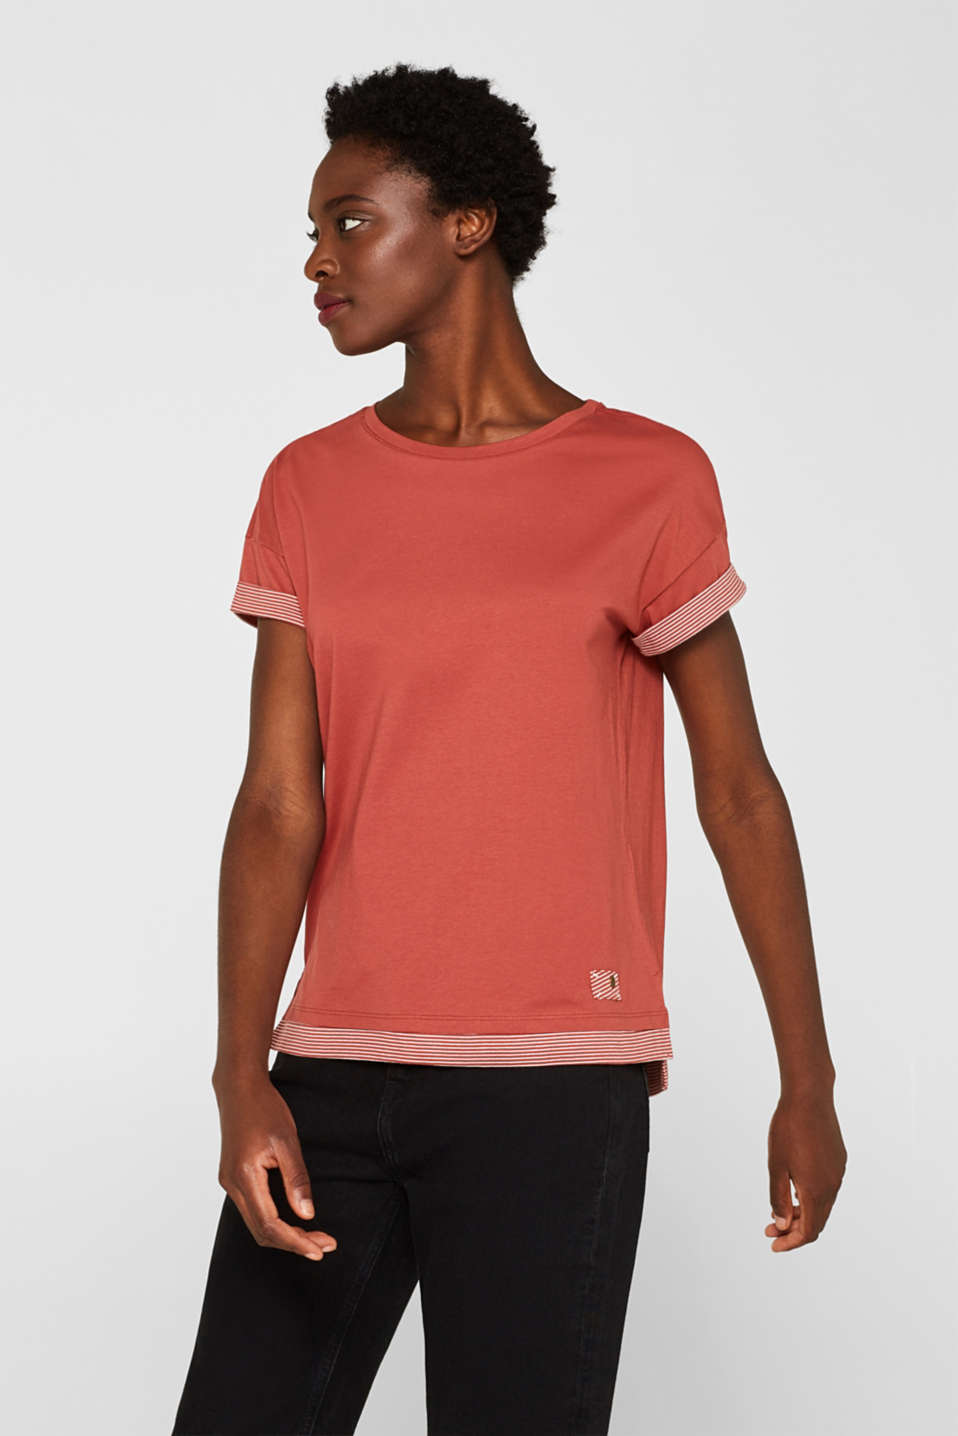 edc - T-shirt with striped accents, 100% cotton